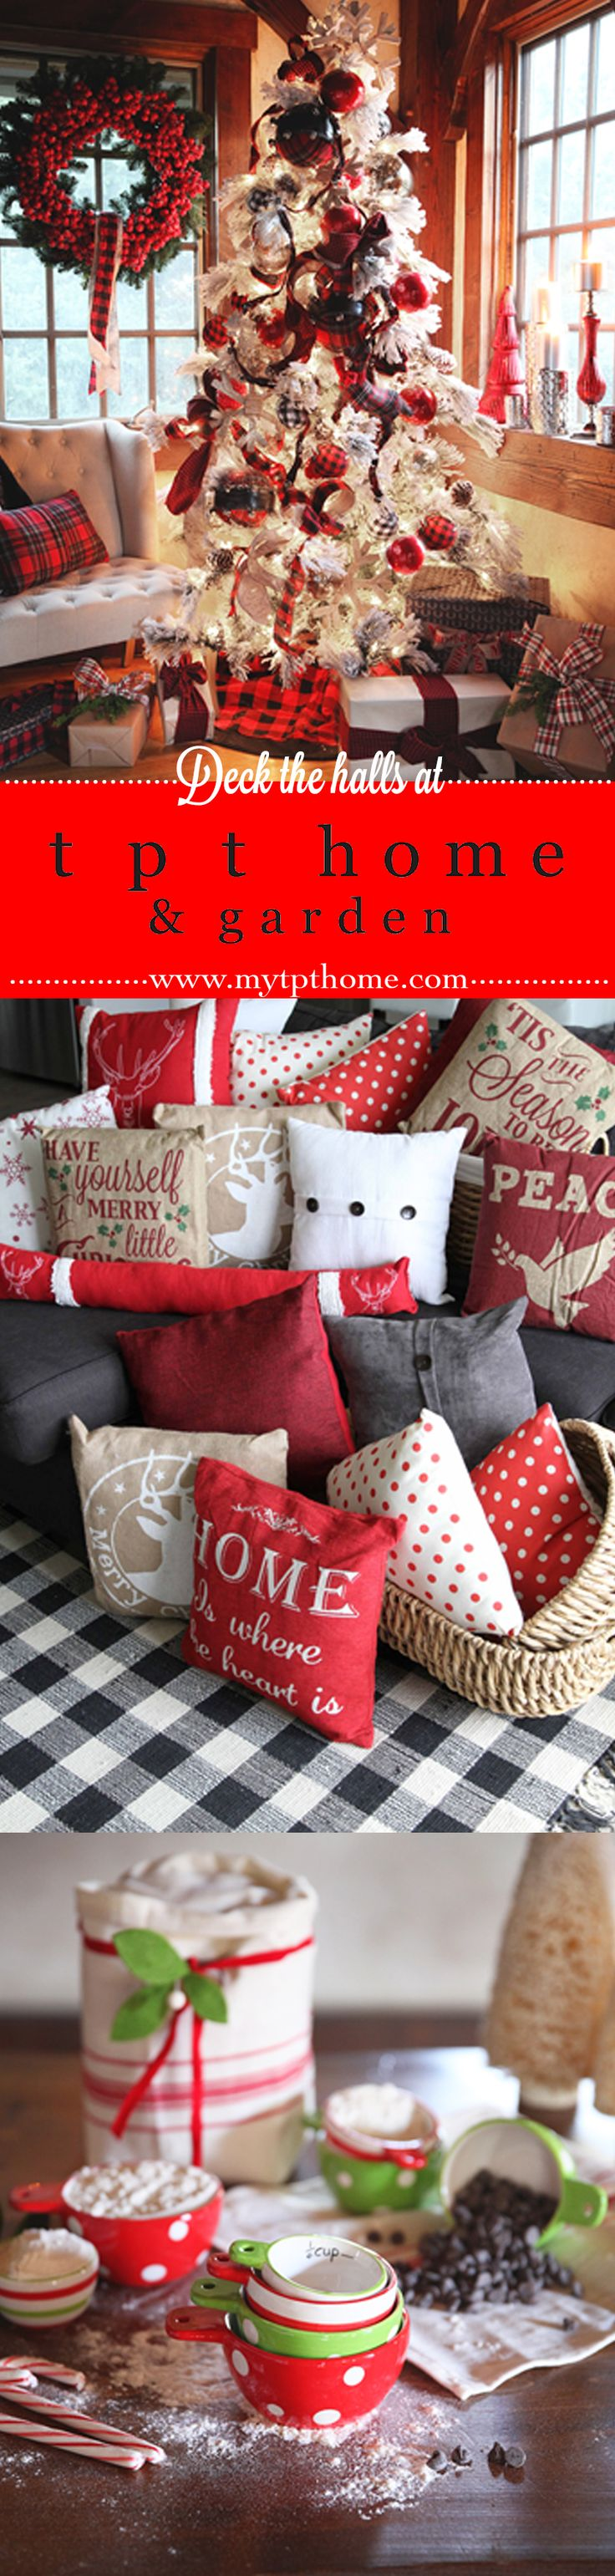 It's beginning to look a lot like Christmas! Shop for your holiday home décor must-haves at tpt home!